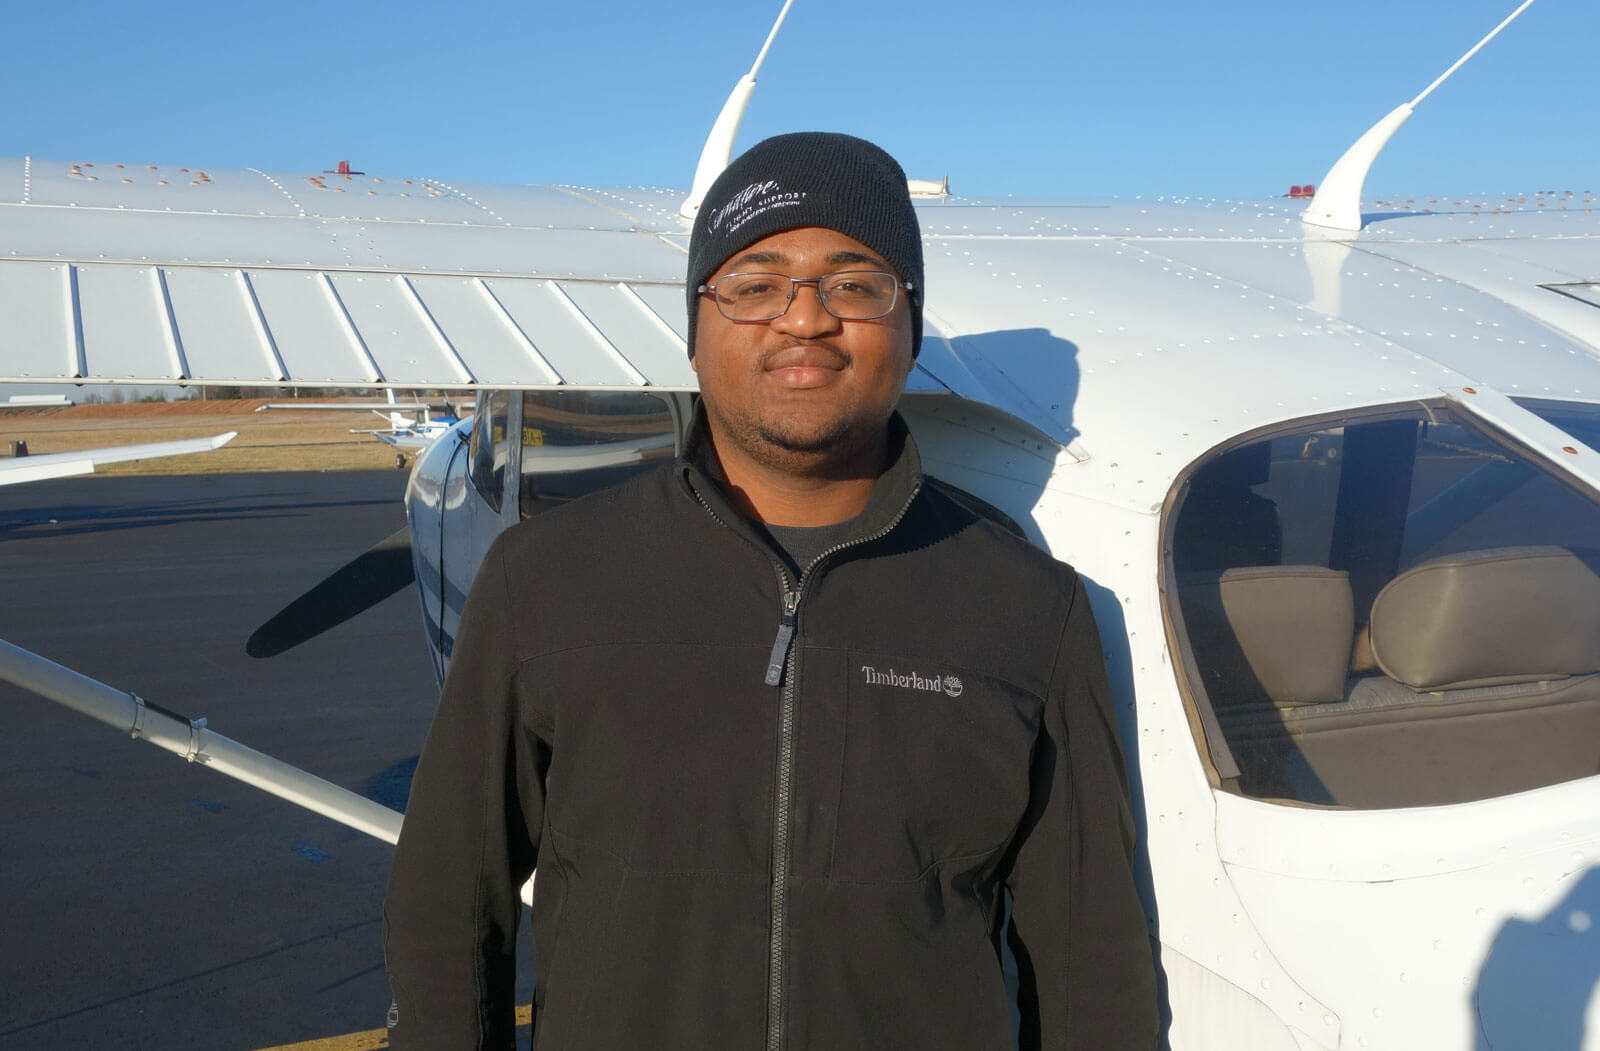 Elijah Johnson, CFI, Princeton Flying School